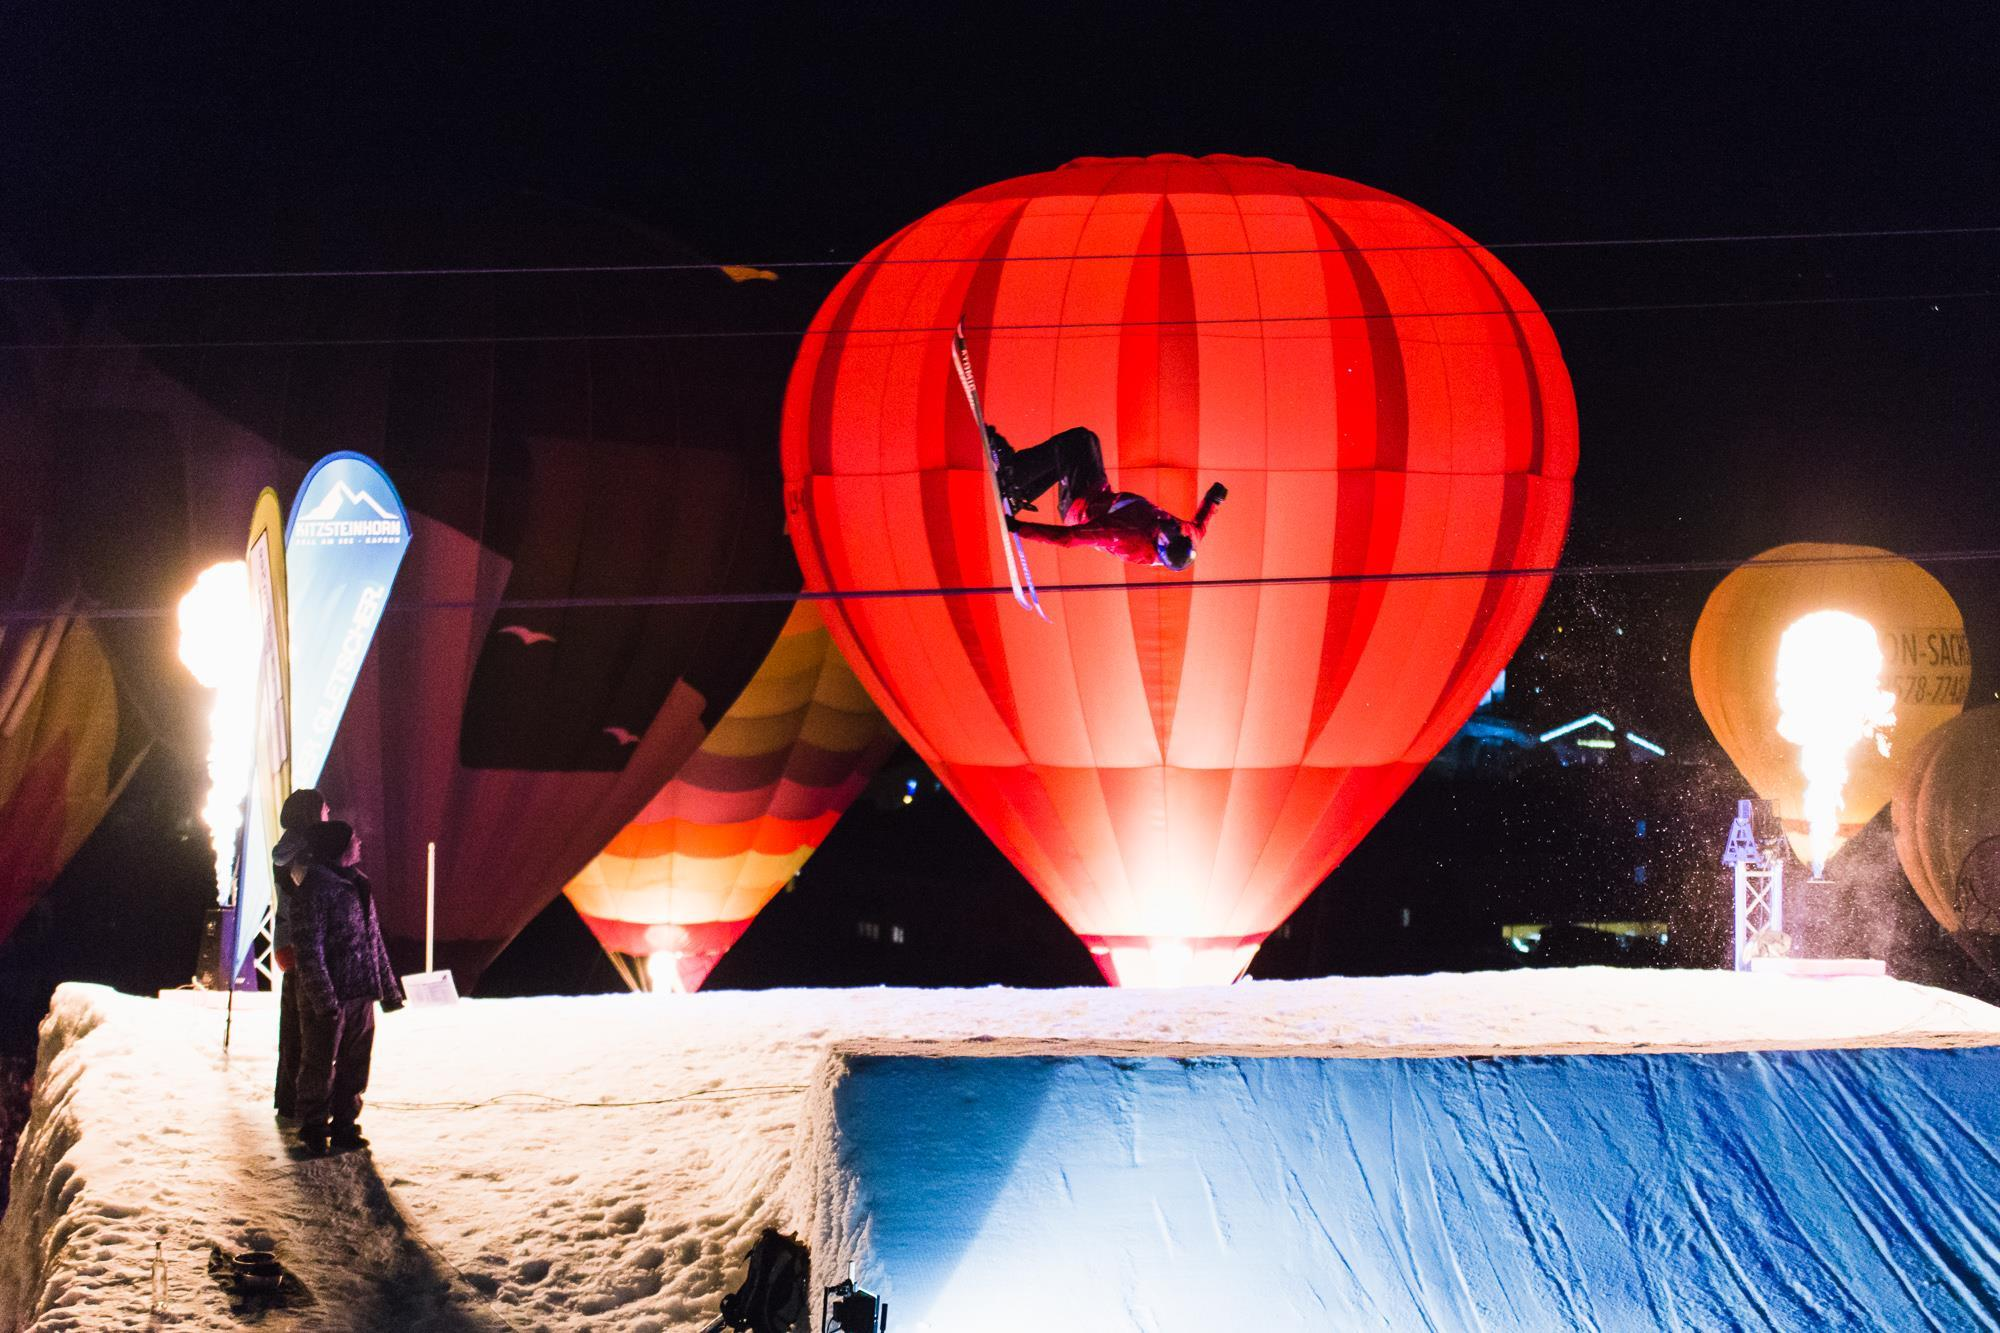 Night of the balloons Kaprun - 03/02/2020, from 8:00 PM